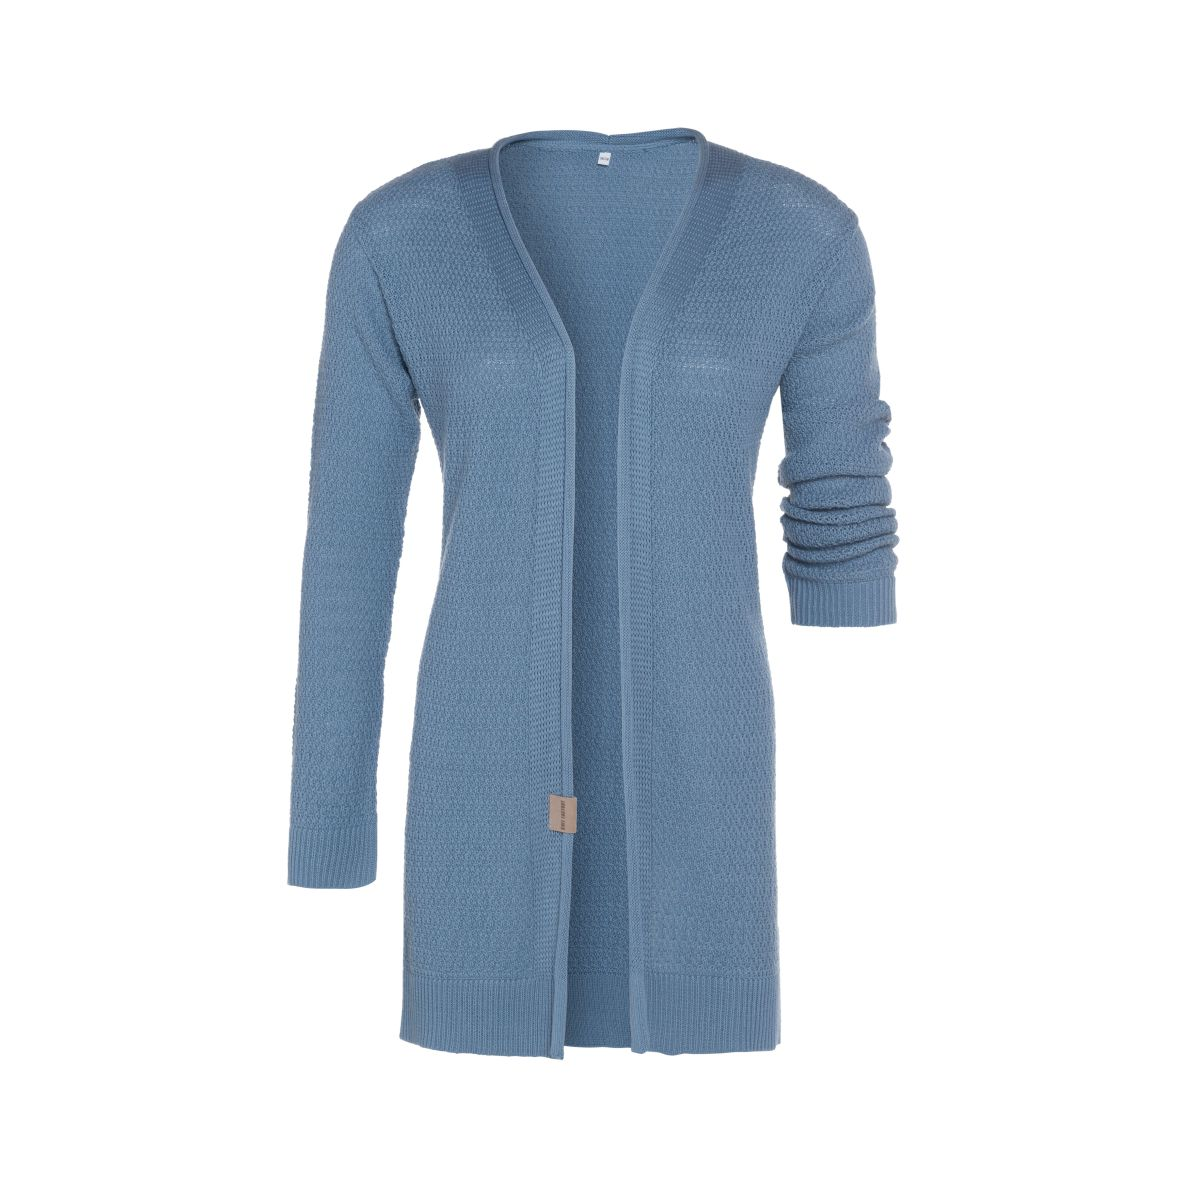 june knitted cardigan stone blue 4042